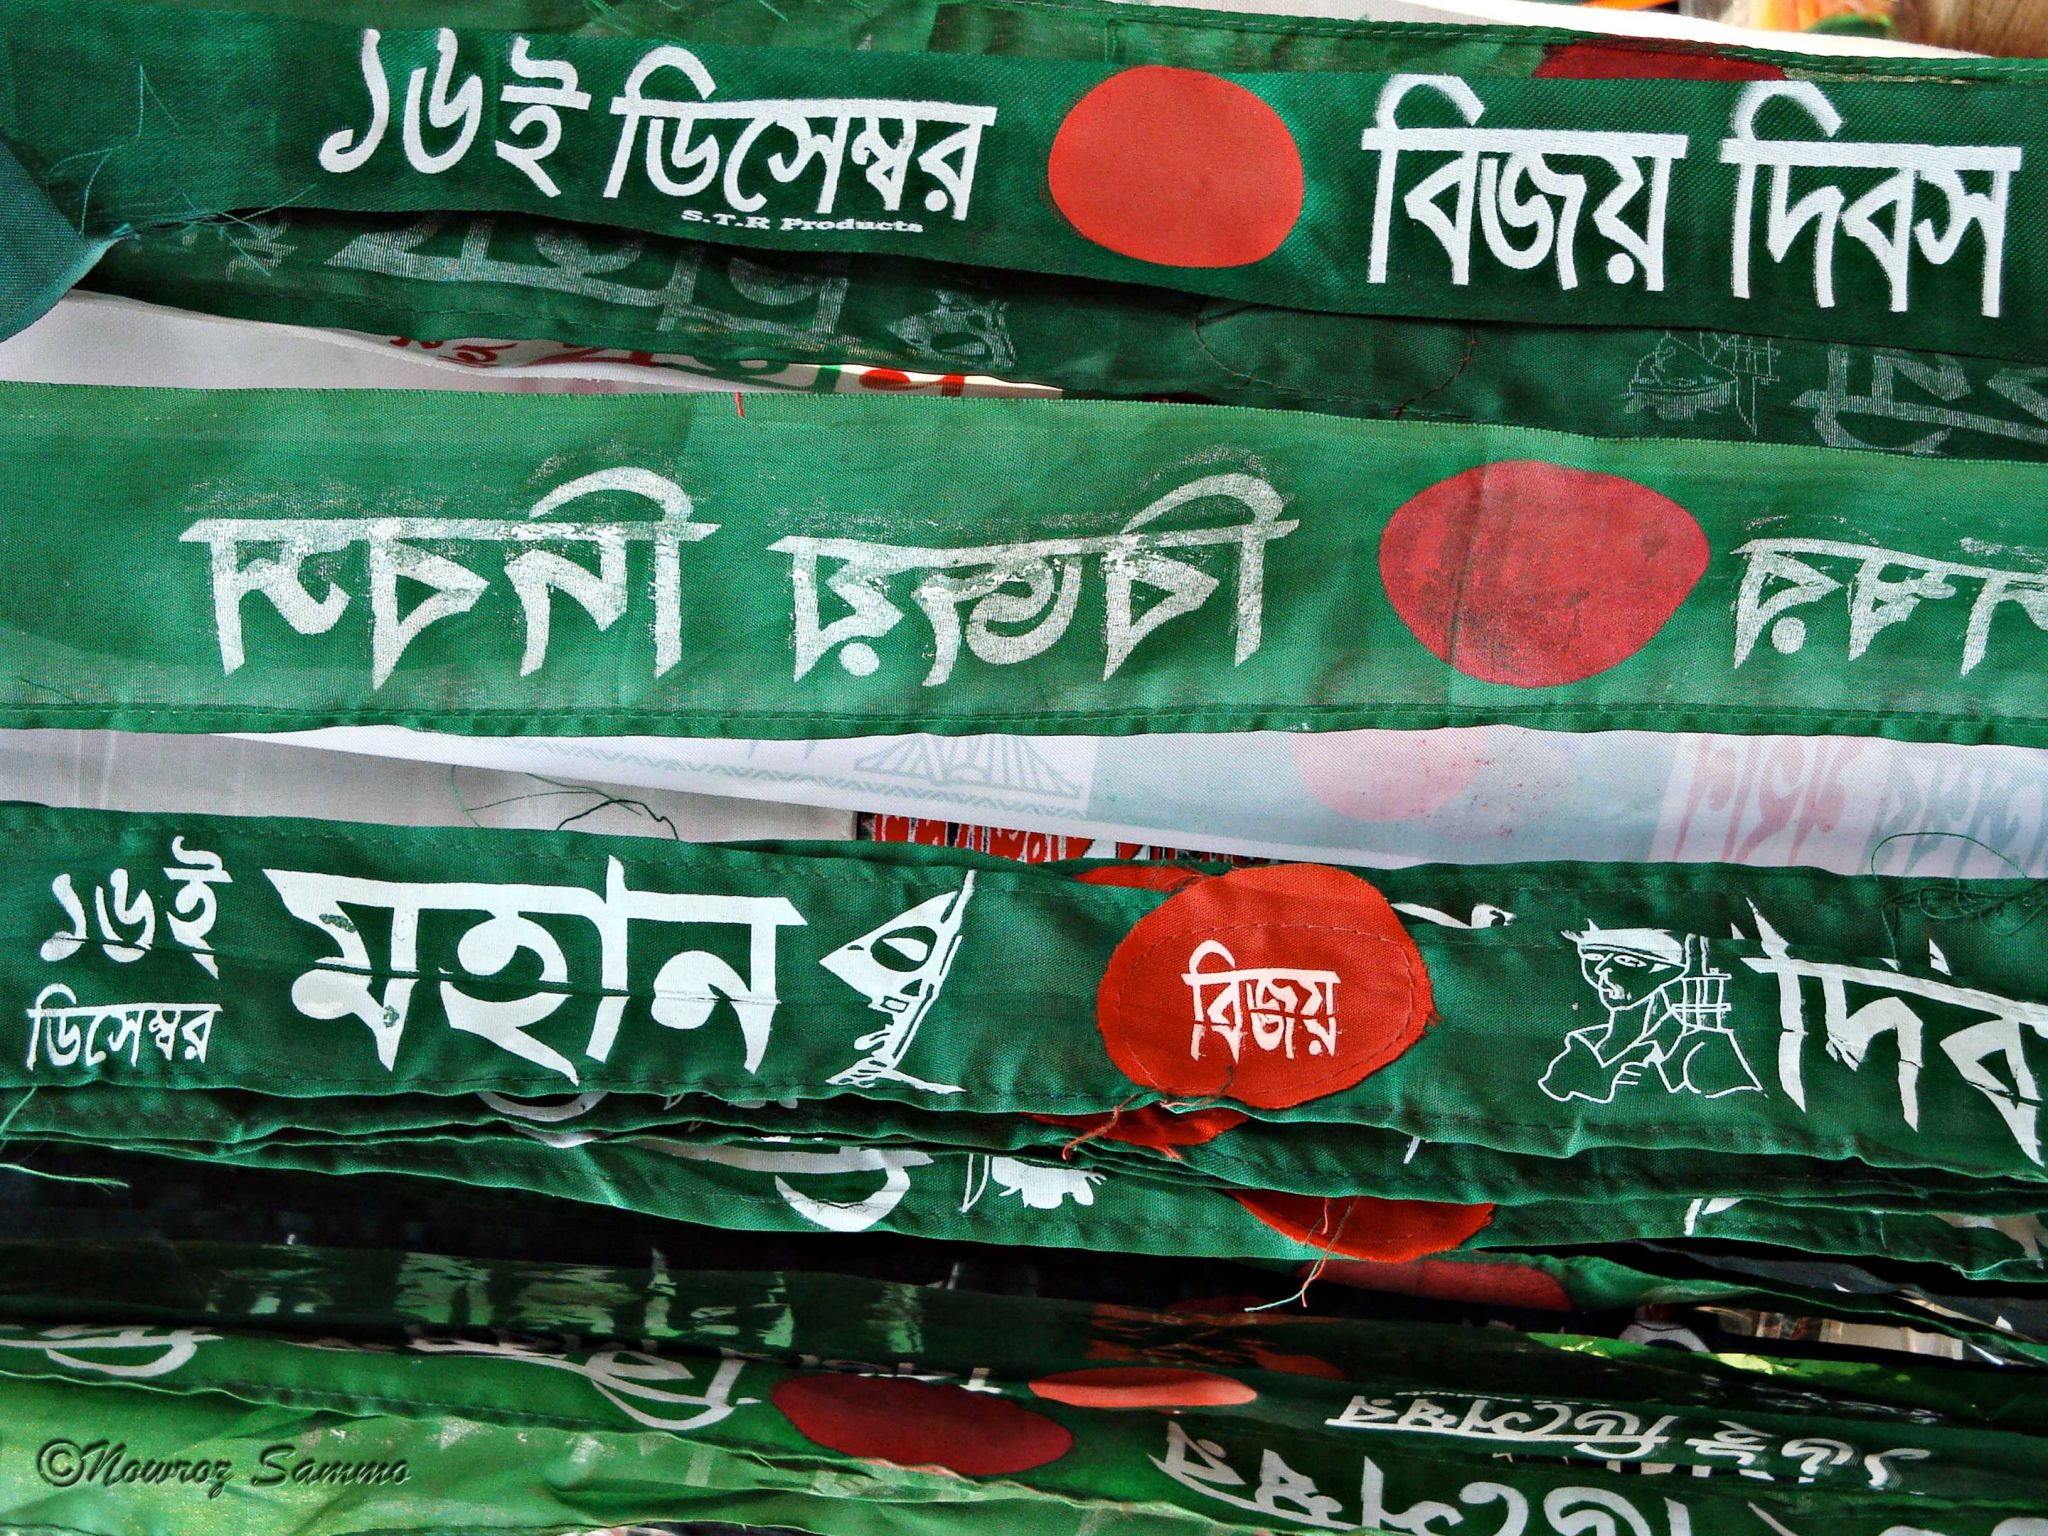 16 December victory day of Bangladesh picture